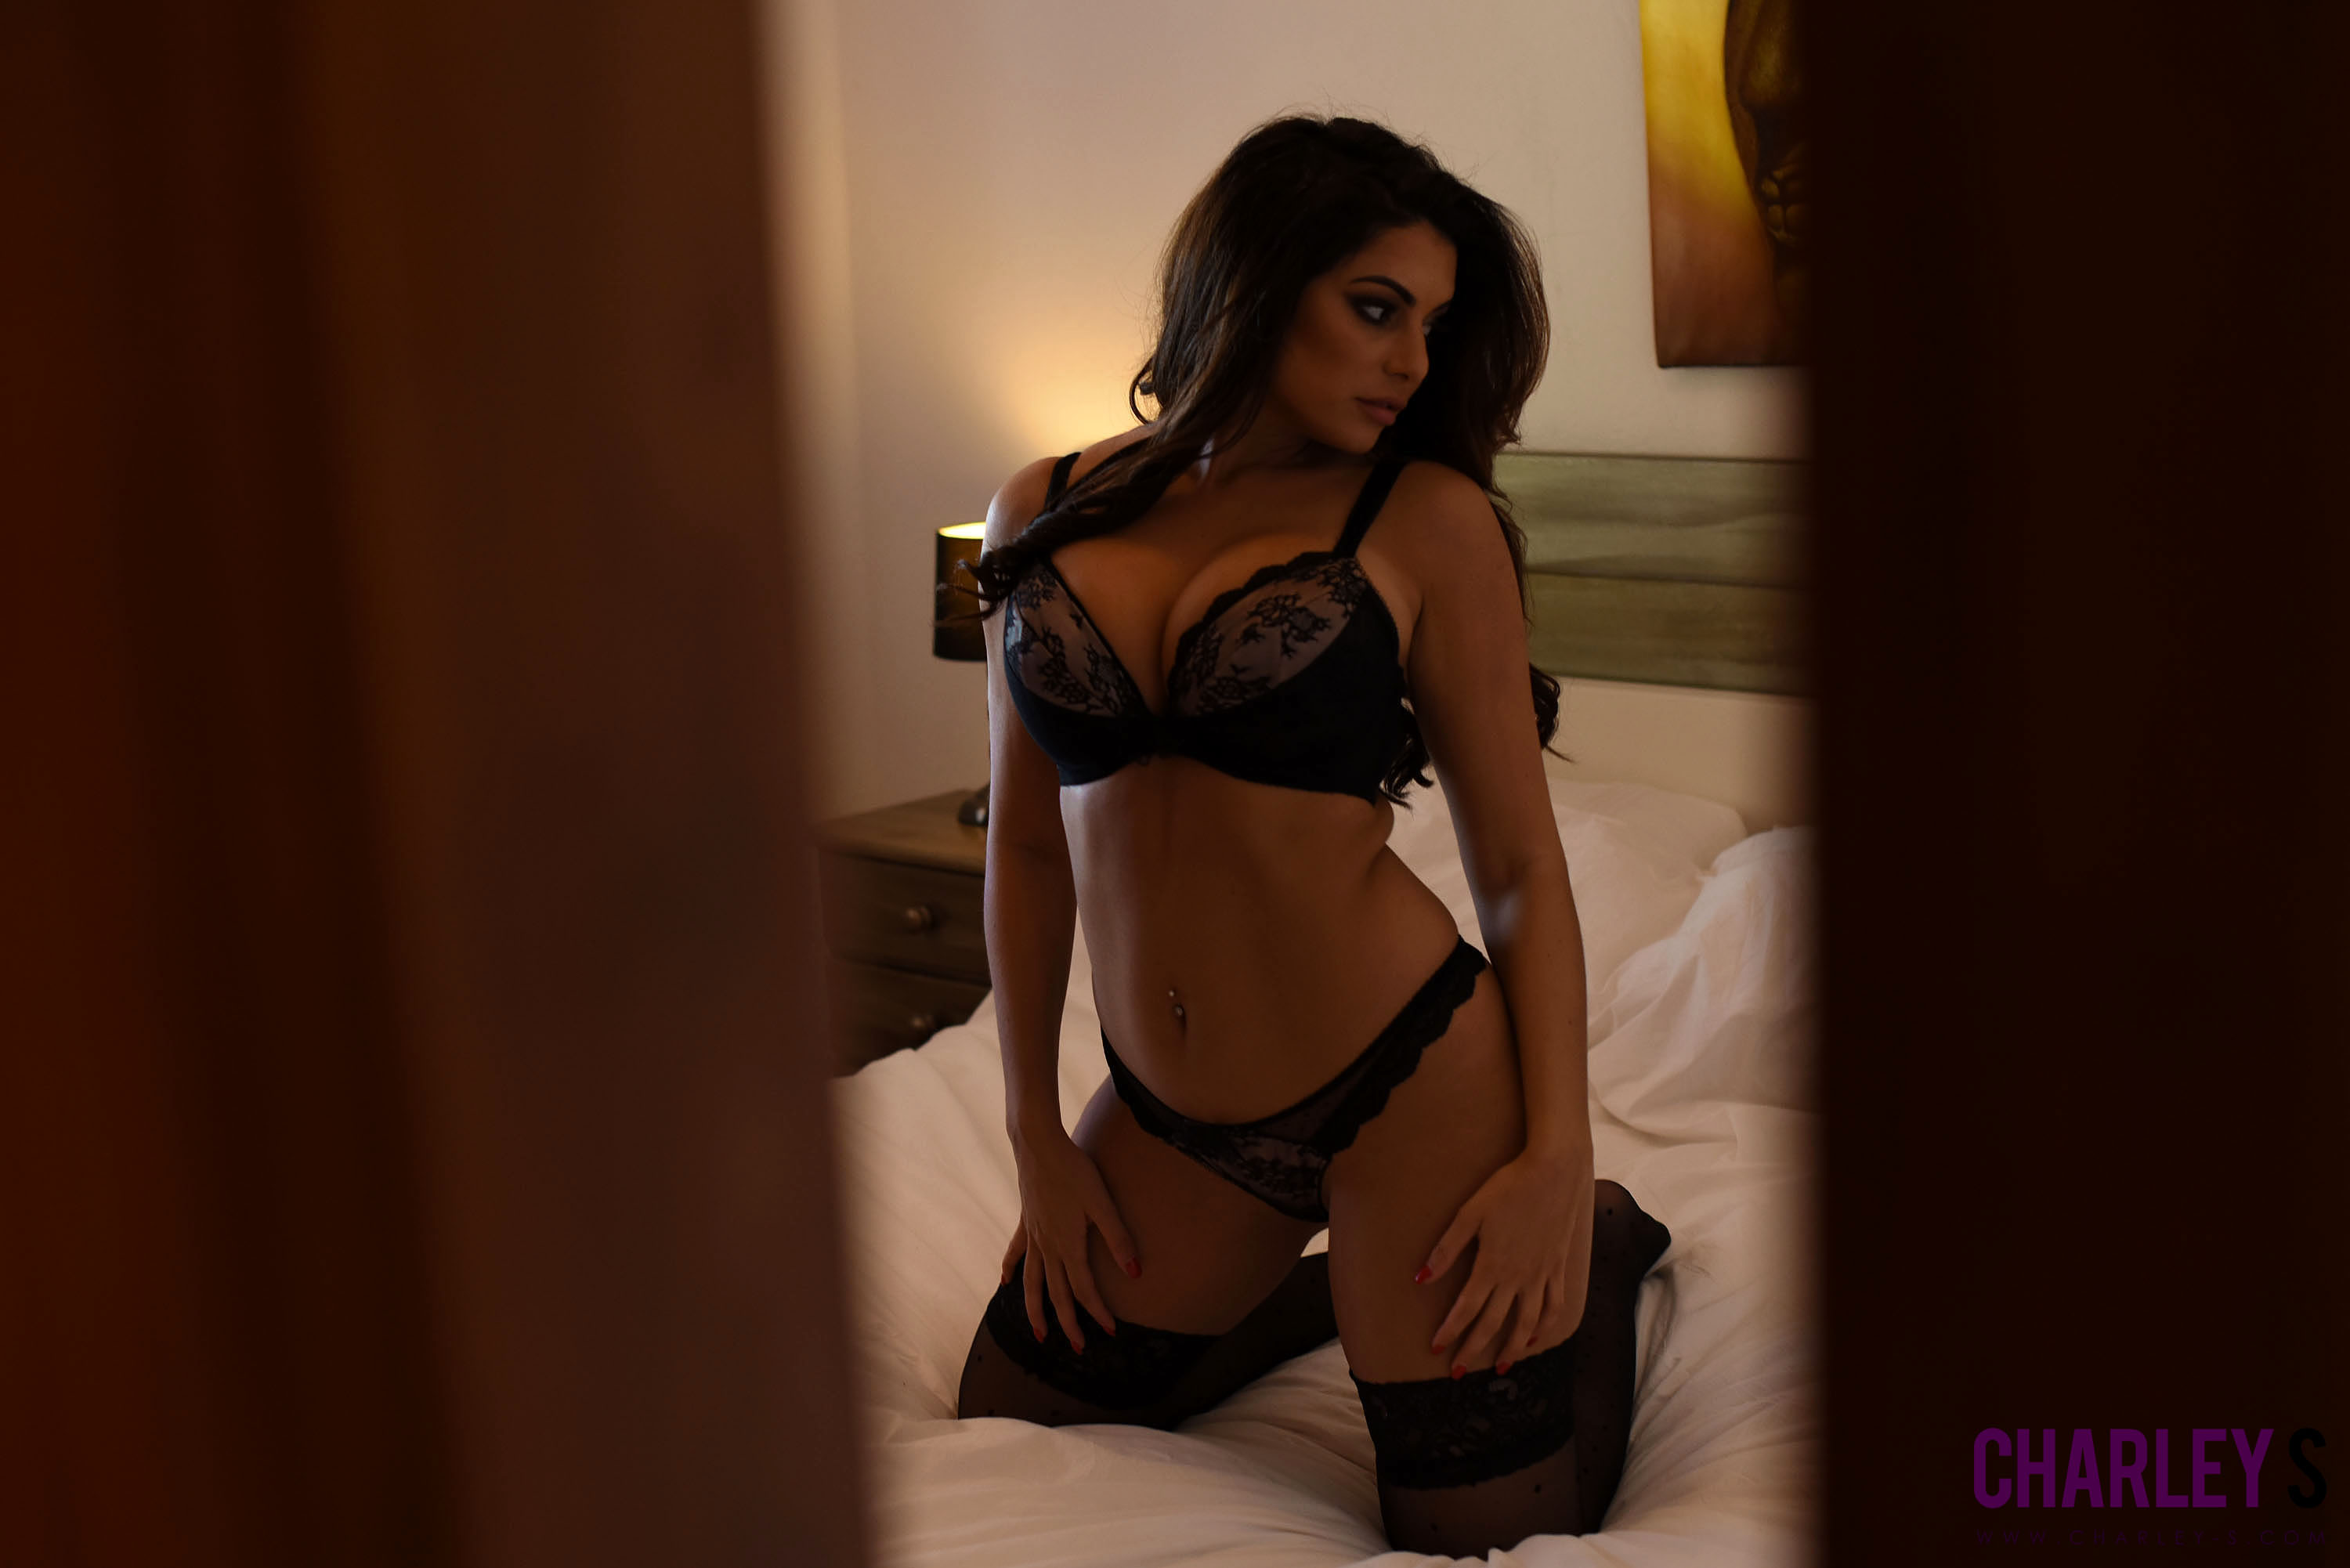 Essex babe Charlotte Springer wearing lingerie in the bedroom